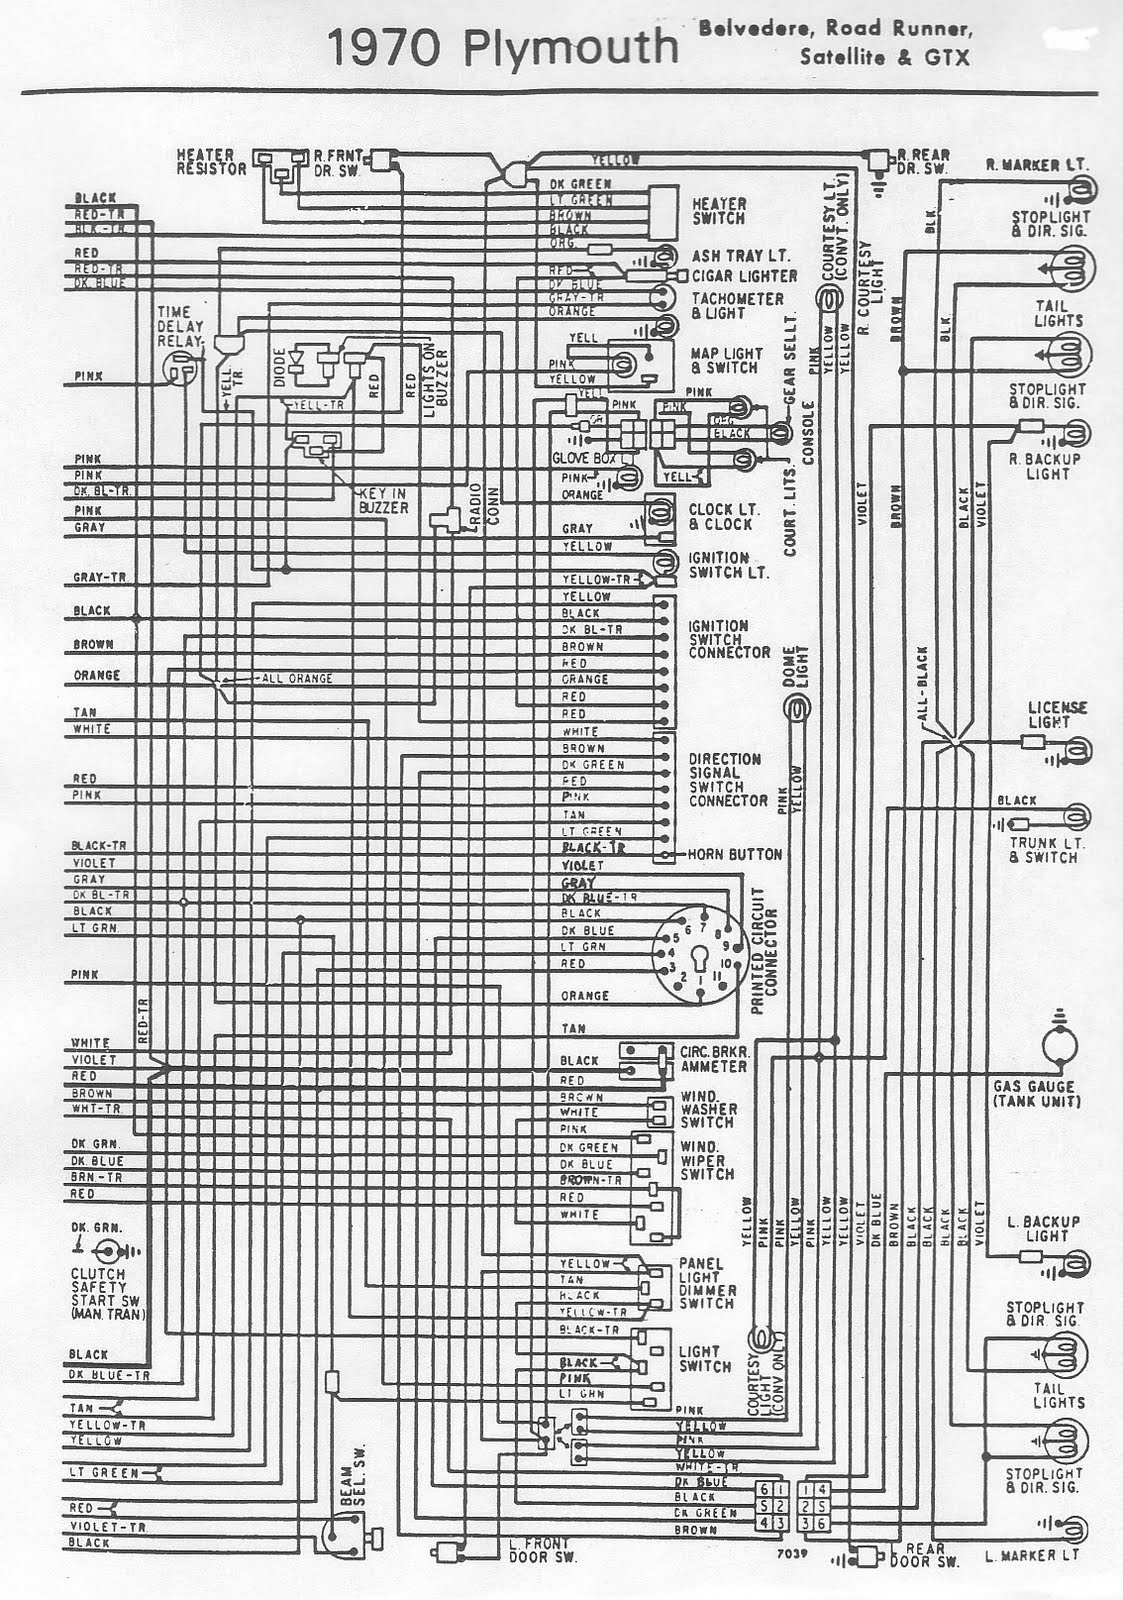 Diagram 1969 Plymouth Satellite Wiring Diagram Full Version Hd Quality Wiring Diagram Pvdiagramxwaits Mefpie Fr